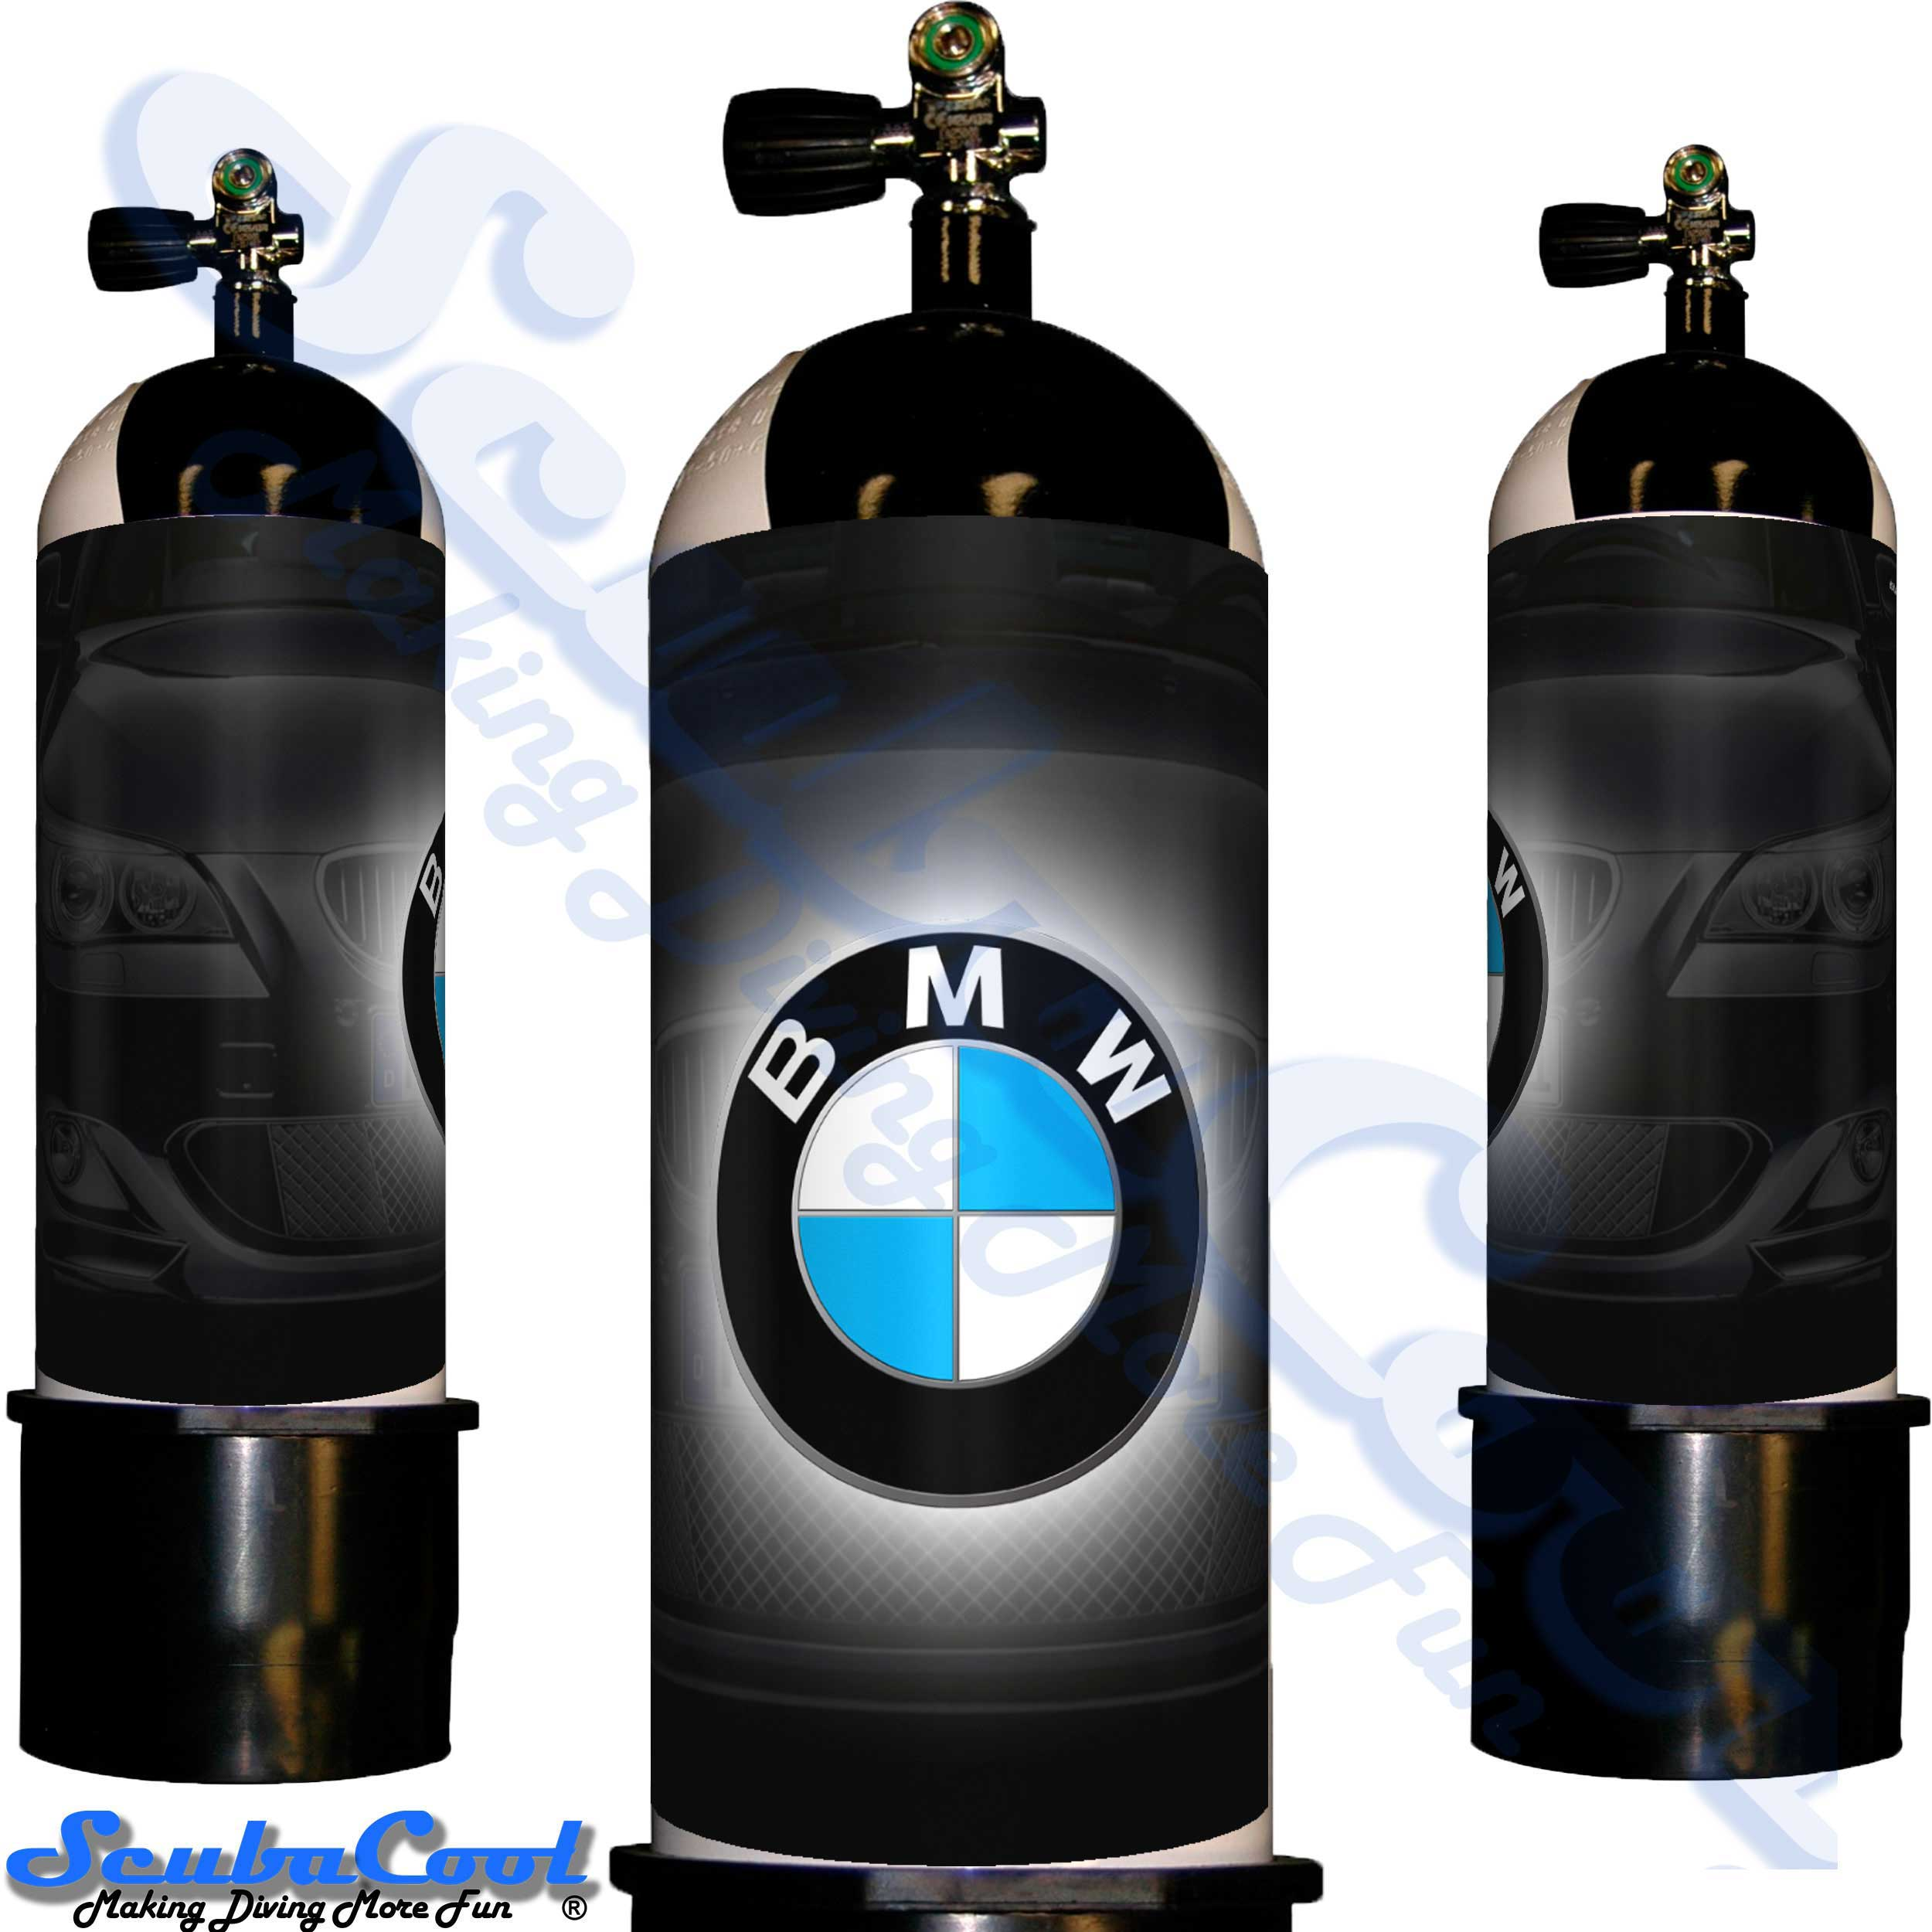 2101 Scubacool Scuba Dive Gas Cylinder Tank Cover NOT neoprene